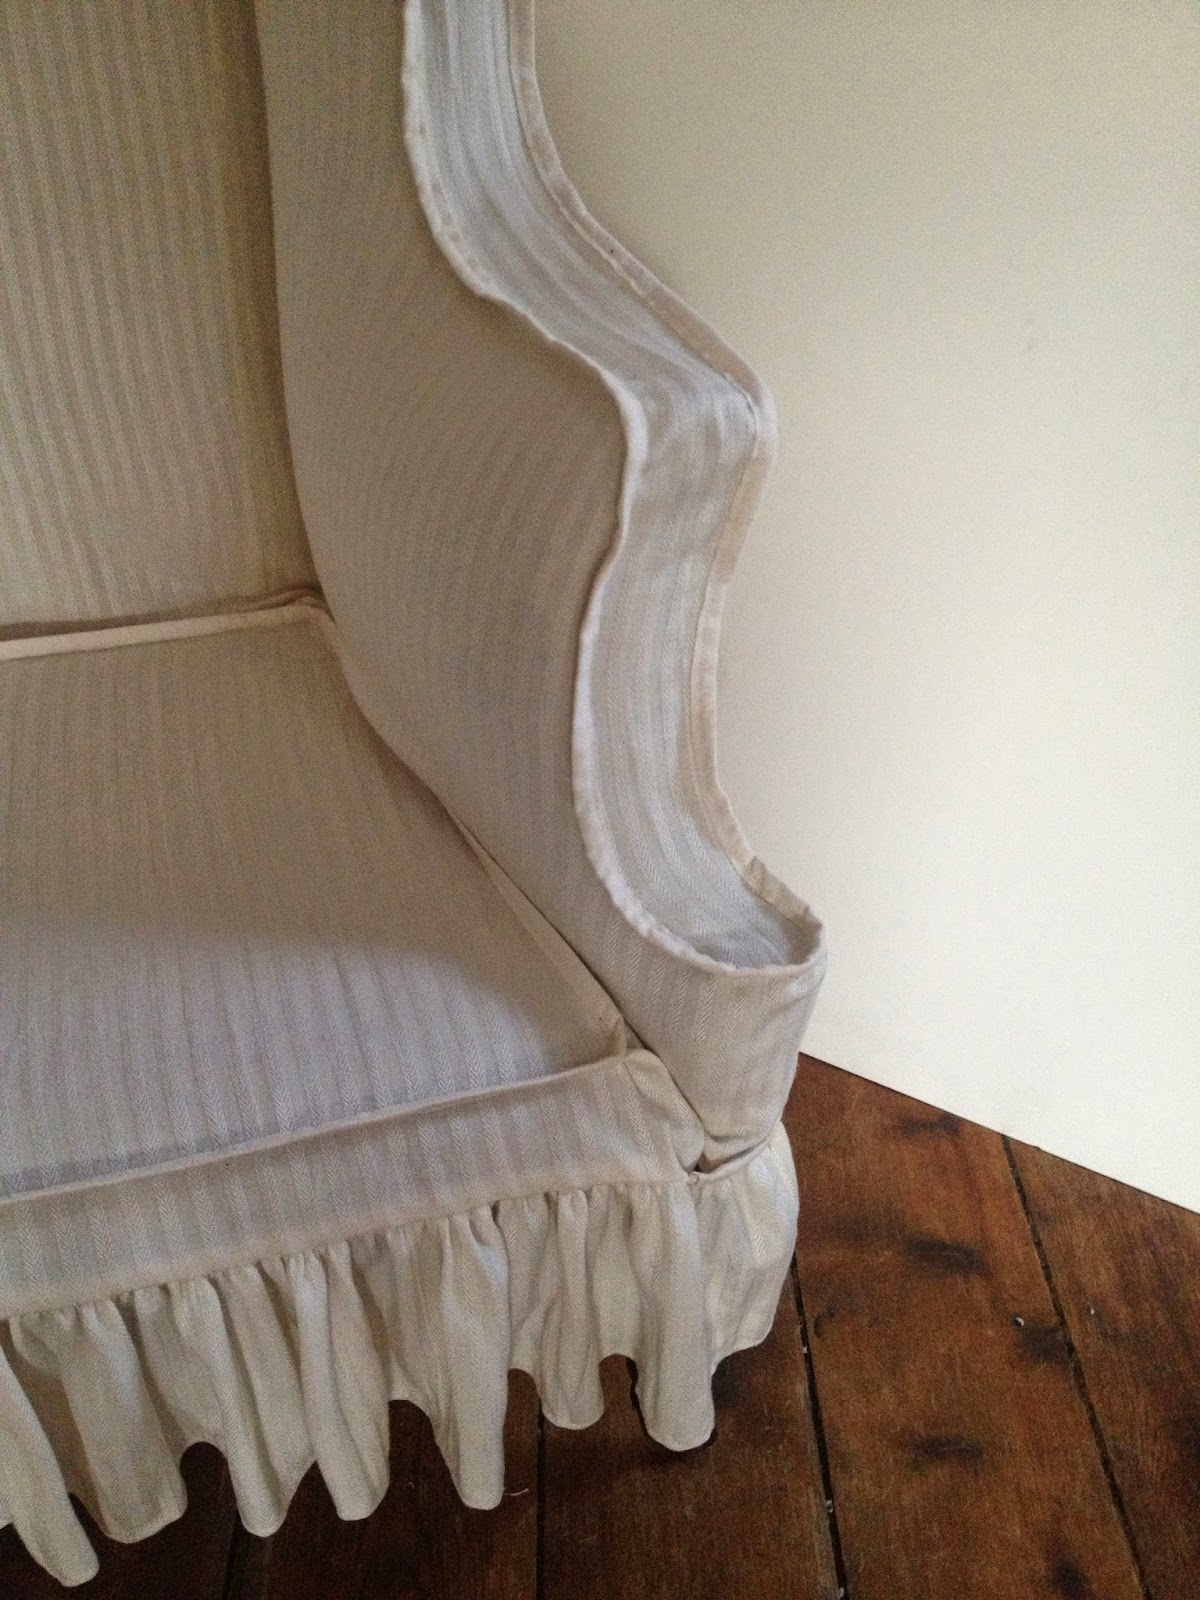 The historic chair after reupholstery in custom made reproduction fabric, textile conservator Gwen Spicer performed the work.